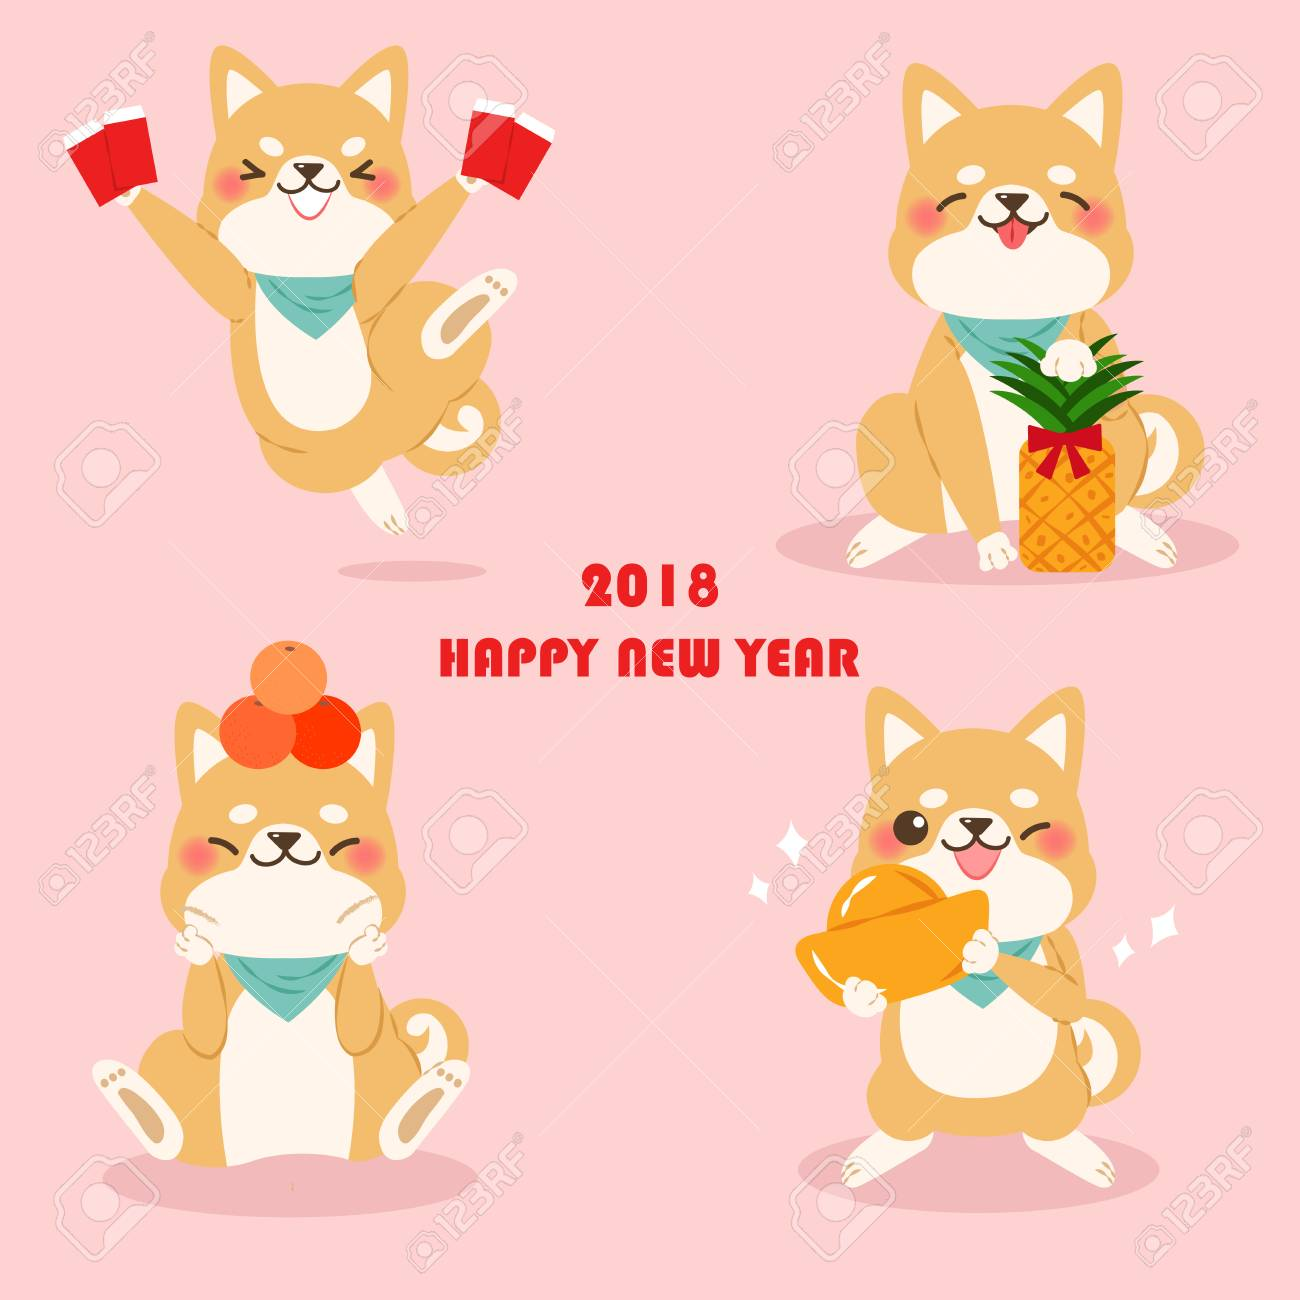 cute cartoon dog with 2018 new year background on pink background stock vector 90370057